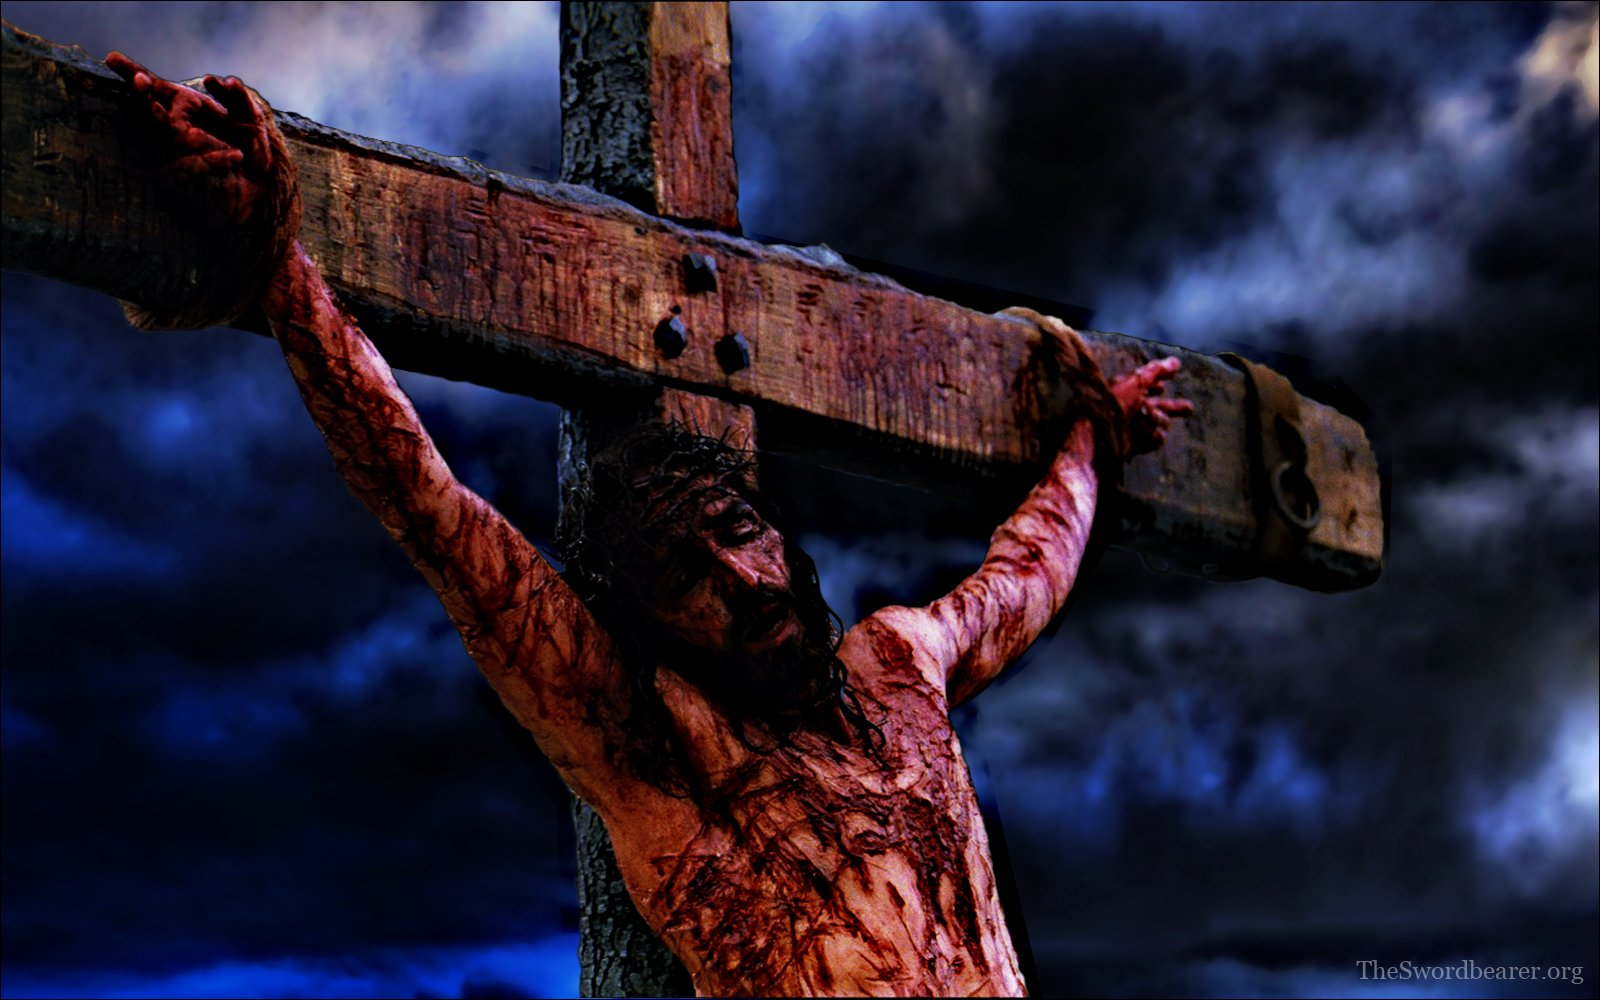 Pics Photos   2560x1600 Jesus Christ Crucified 1600x1200 1600x1000